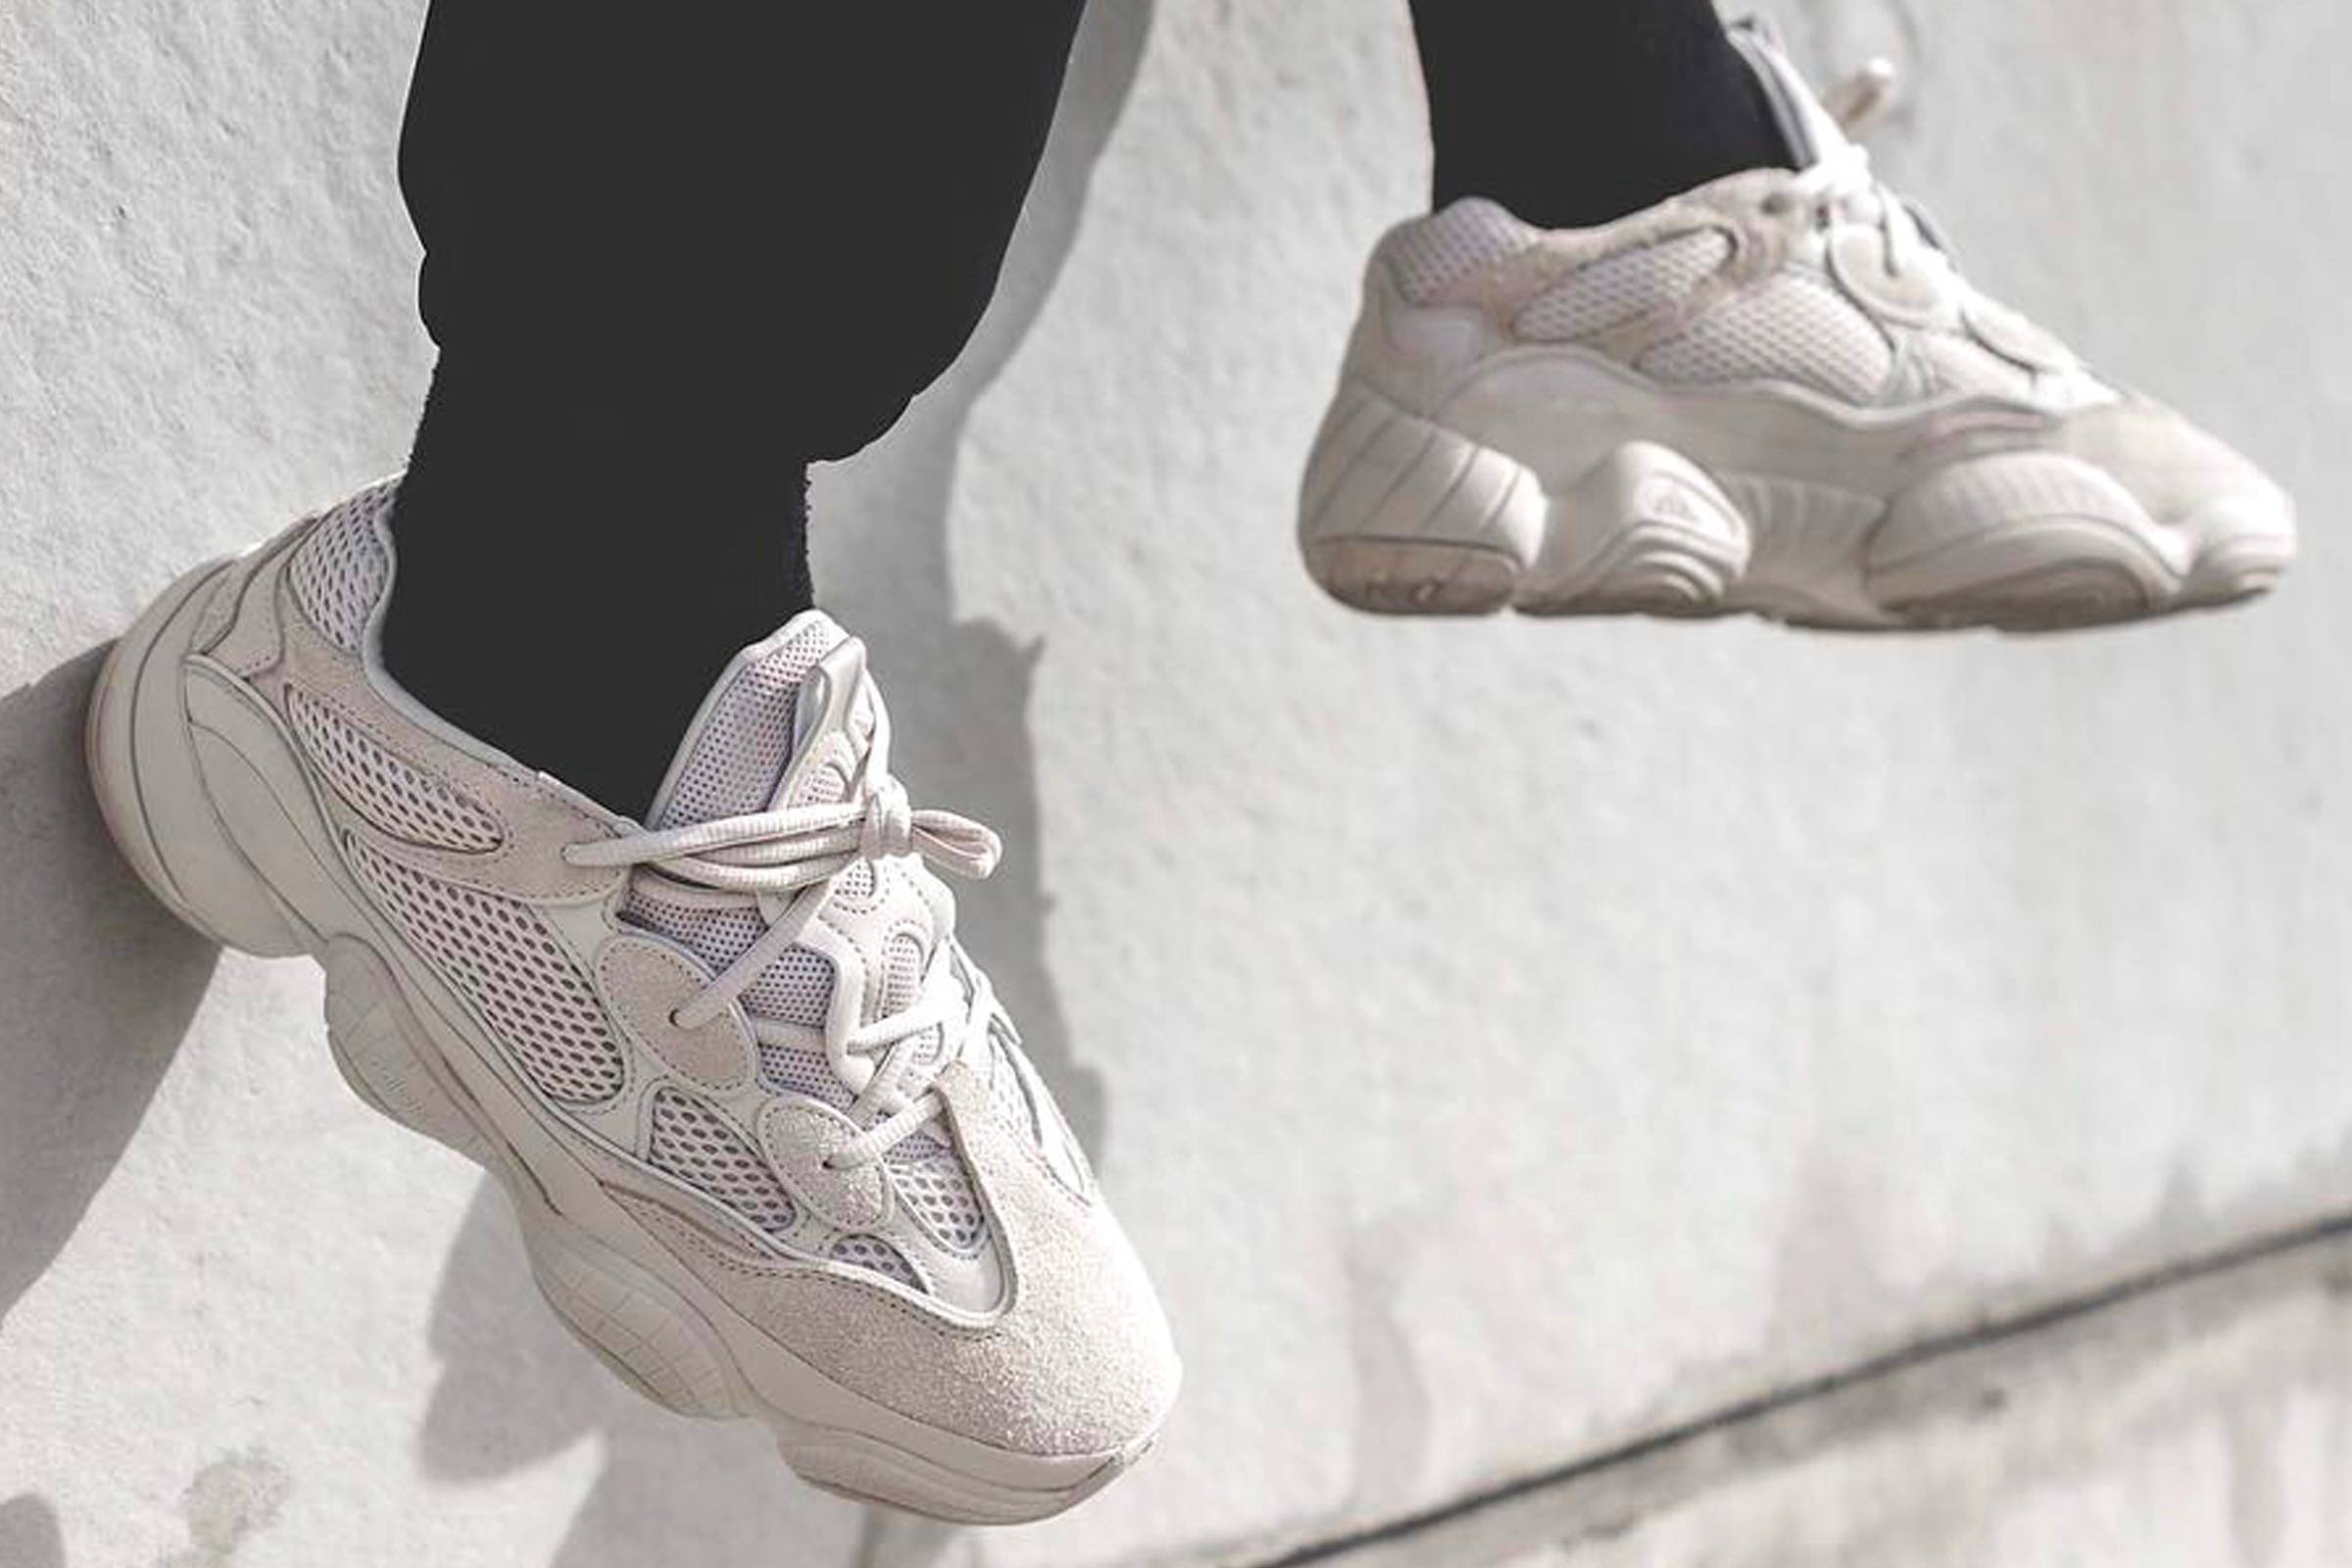 promo code a7e2c b3c0b The Yeezy Desert Rat 500 Blush Drops This Weekend | Grailed